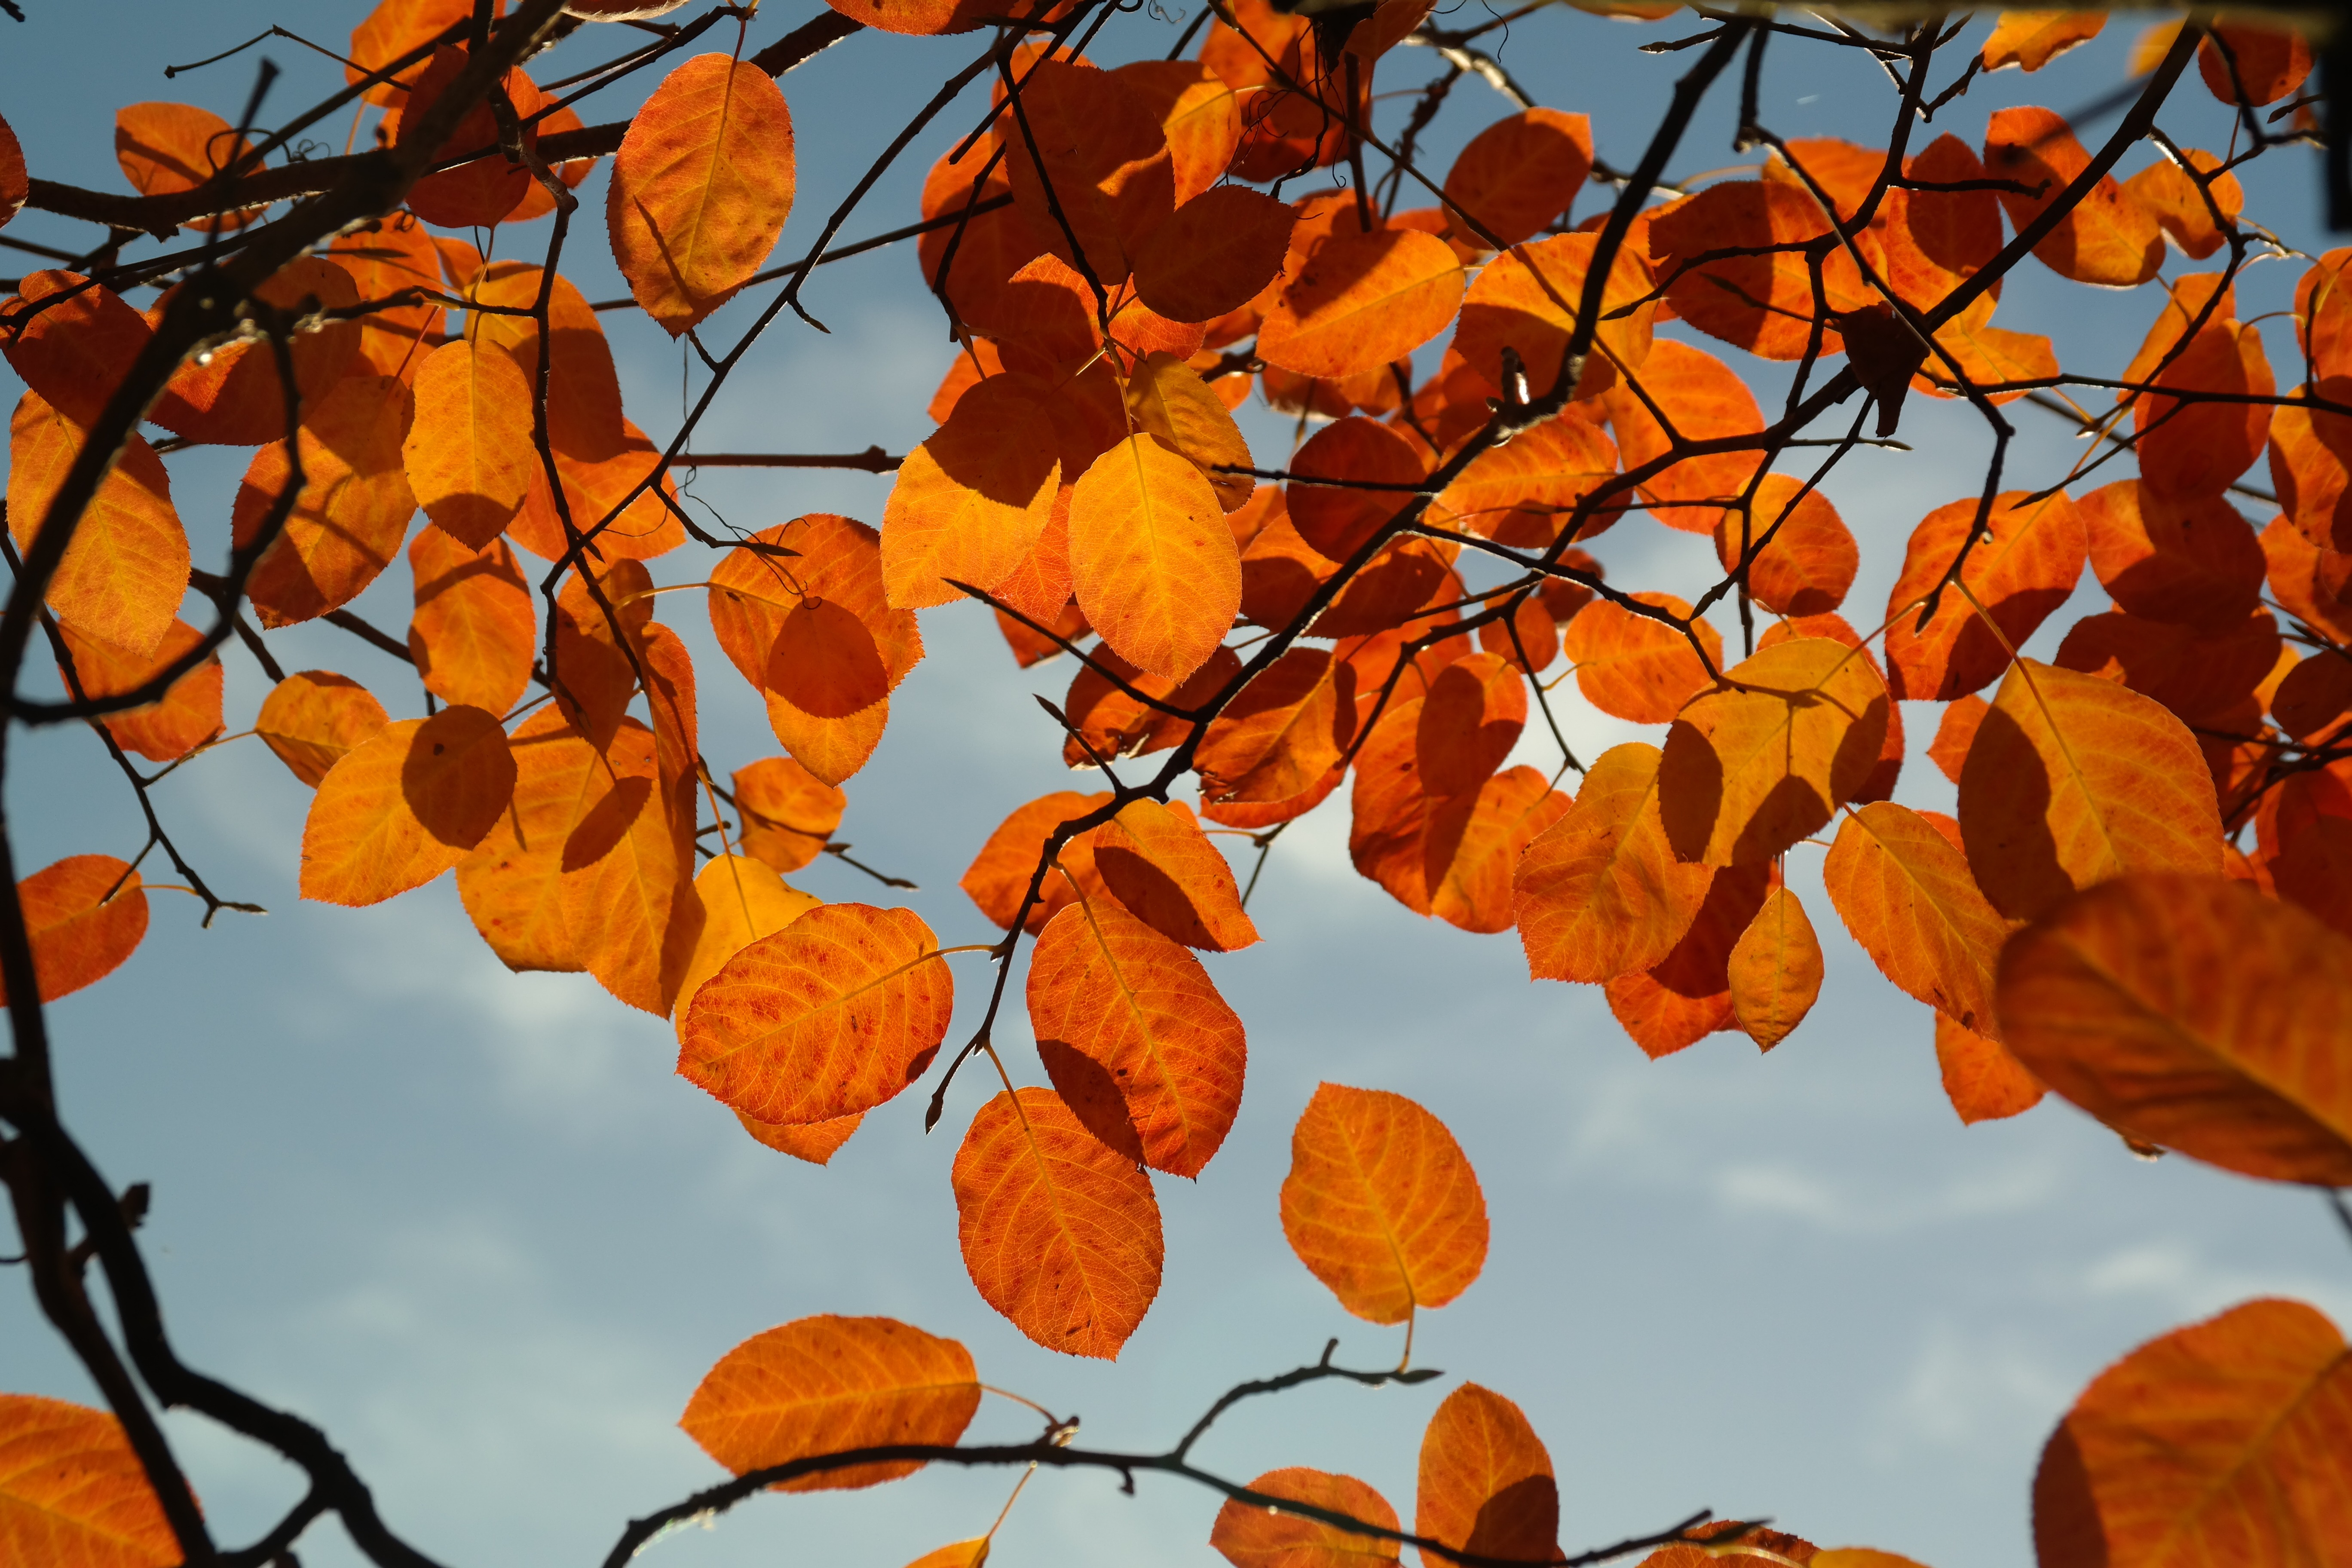 Fall In Love Leaf Wallpaper Orange Leaves During Daylight 183 Free Stock Photo